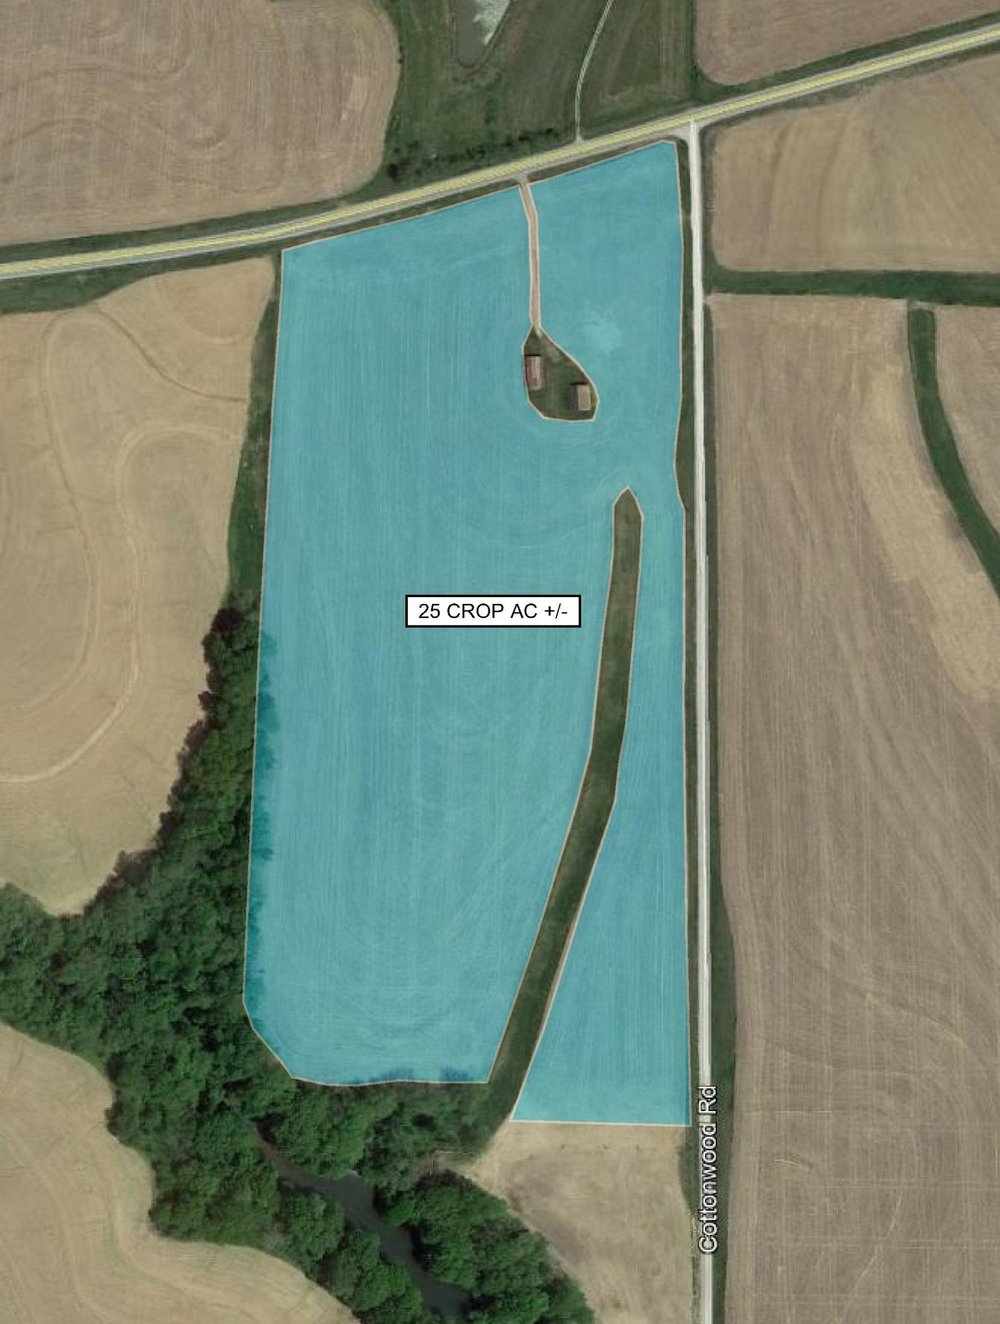 Tract Map: 25 Crop Acres